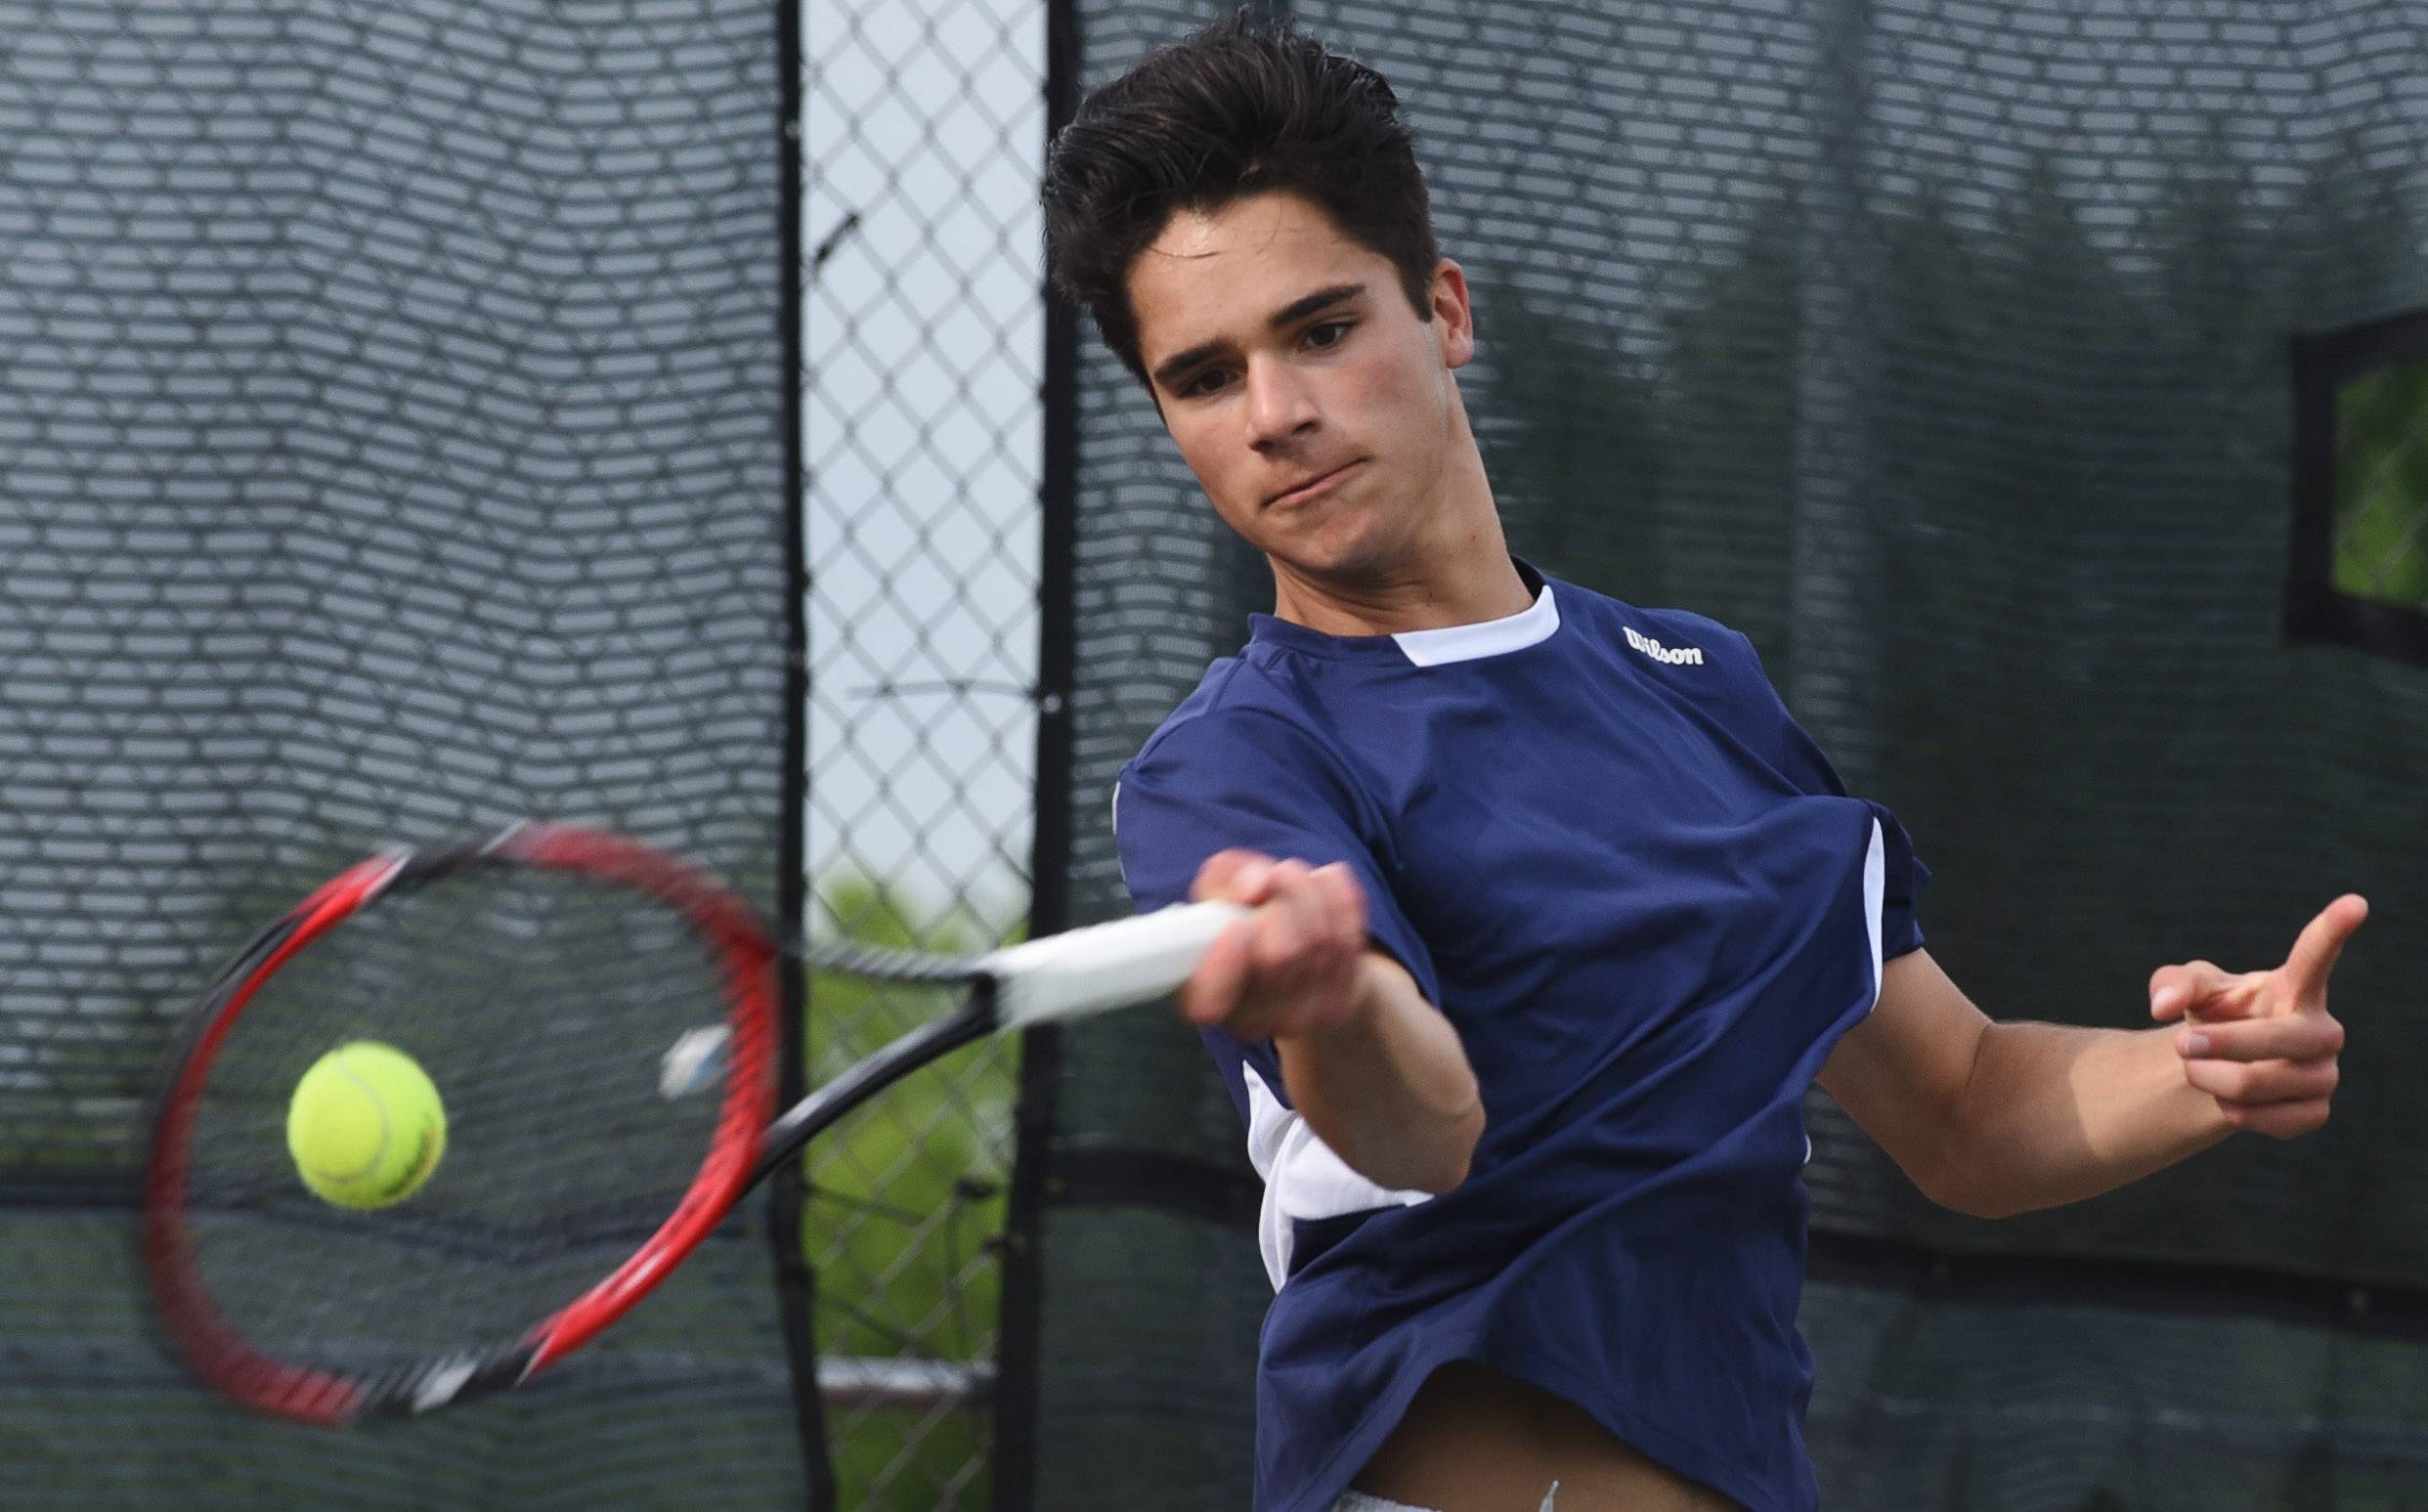 Burlington Central's Nicholas Welker plays during the boys state tennis preliminaries at Rolling Meadows High School Thursday.